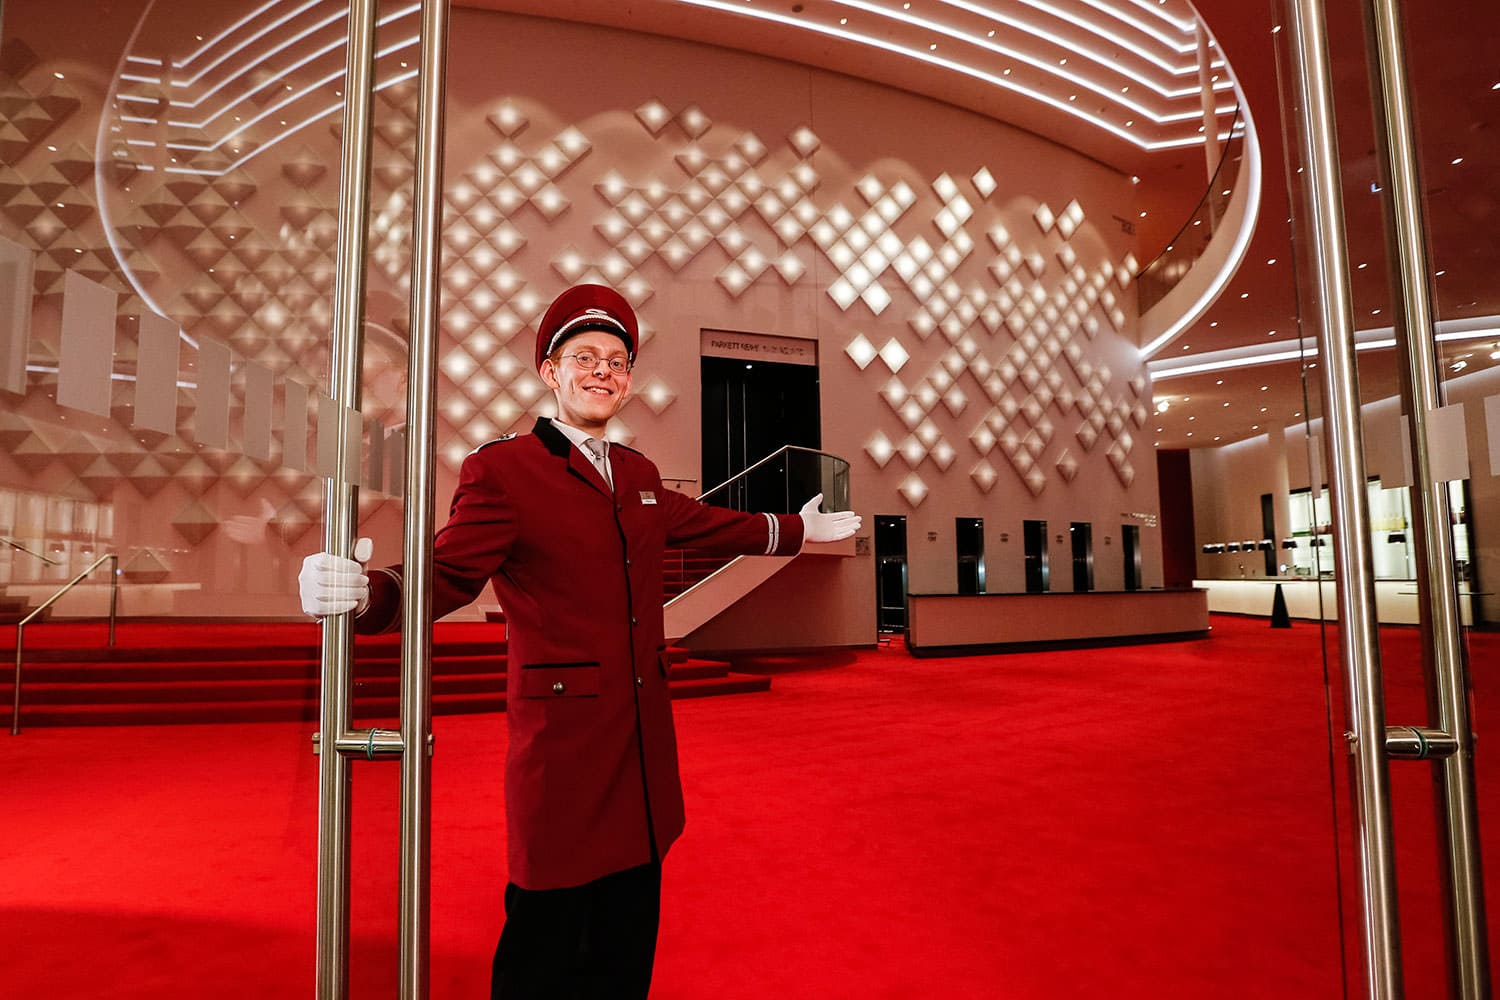 Concierge invites to the Stage Theater an der Elbe with the OLED installation in the background